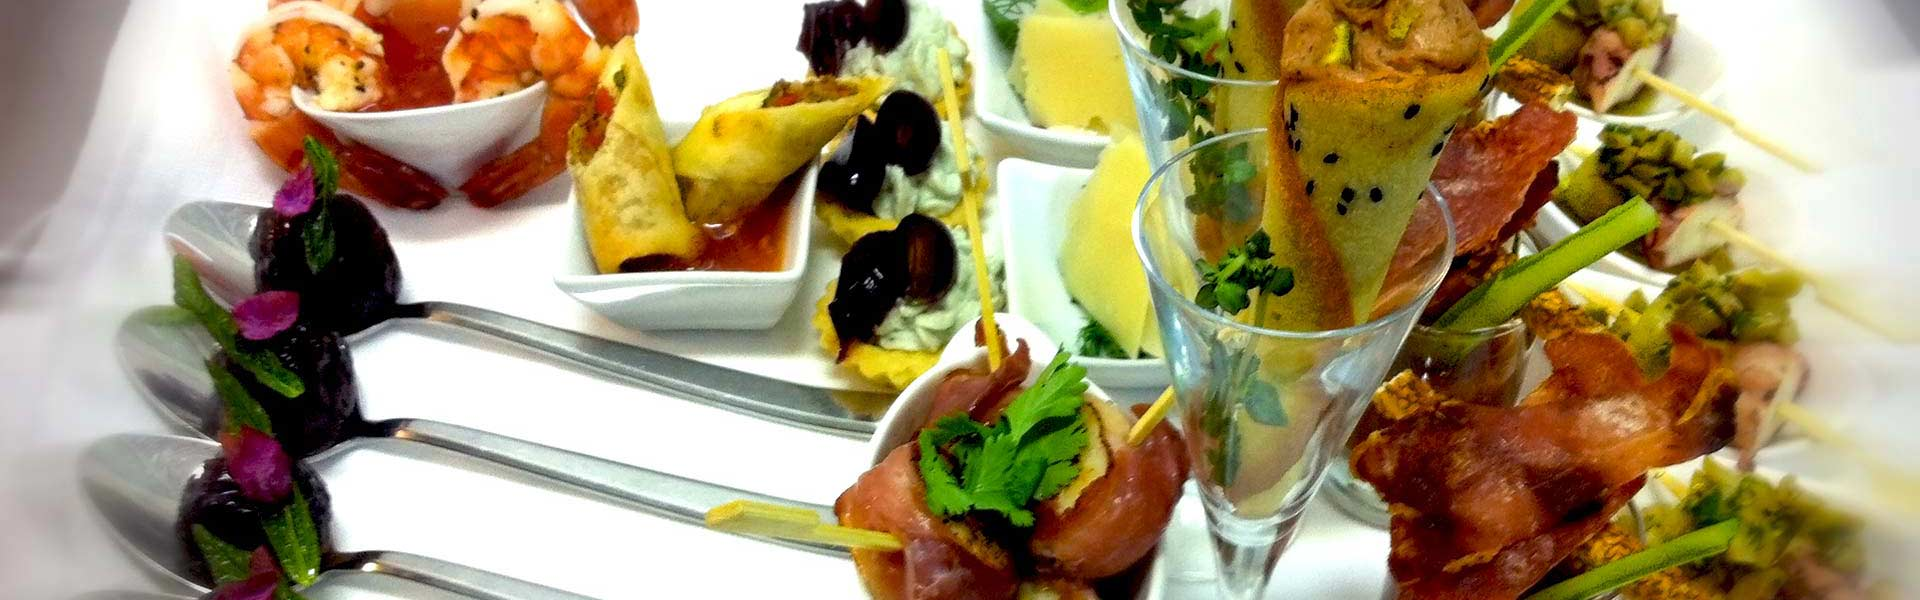 Catering - French Restaurant - French Bakery